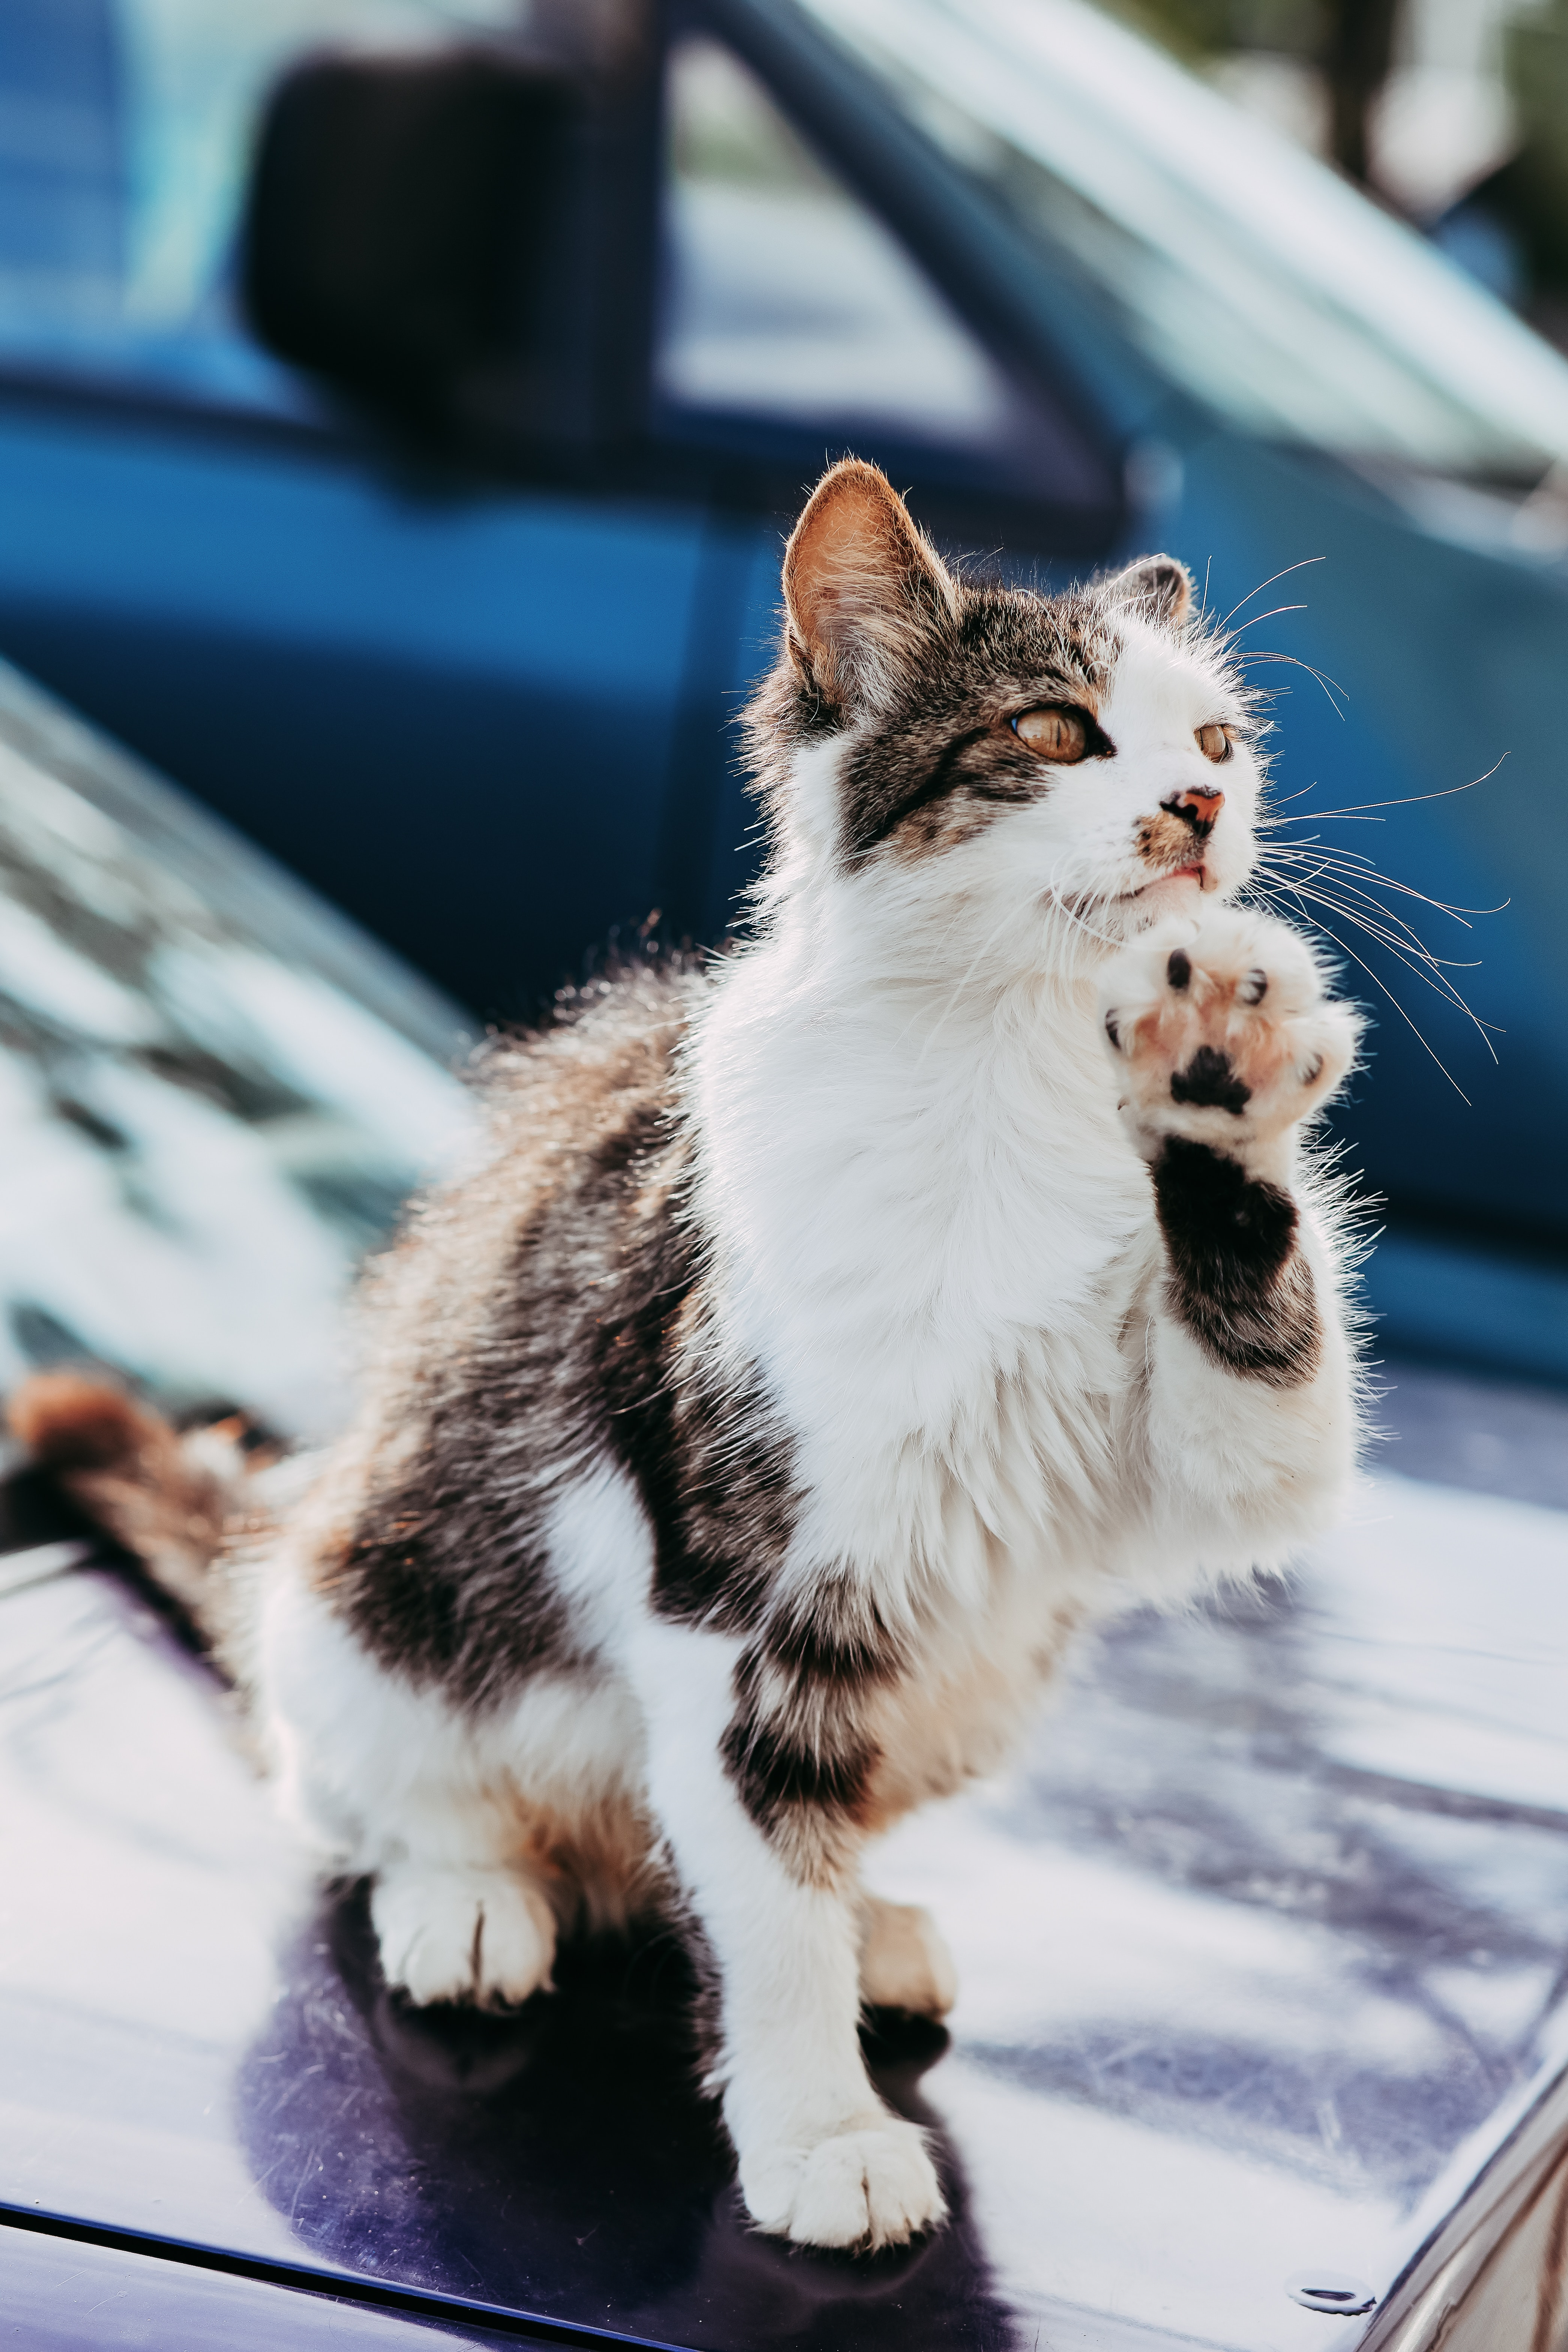 62580 download wallpaper Animals, Cat, Paw, Cool, Pet screensavers and pictures for free